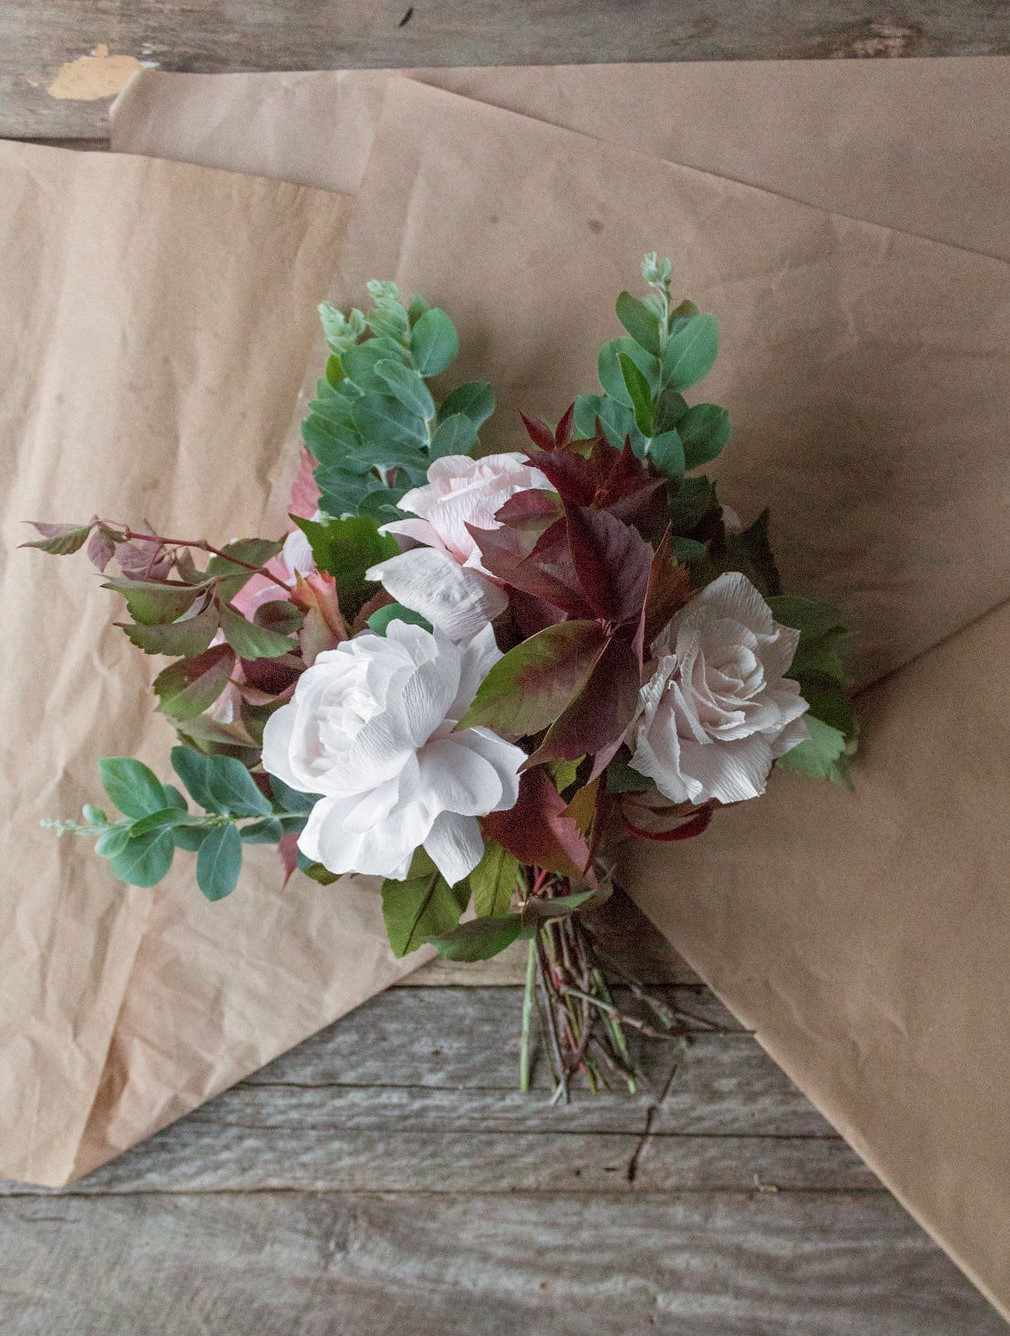 The bouquet ready to be wrapped with paper. The paper is placed down to make an upside down V. Source: Lisel Vonhoff from  @bellebouquets